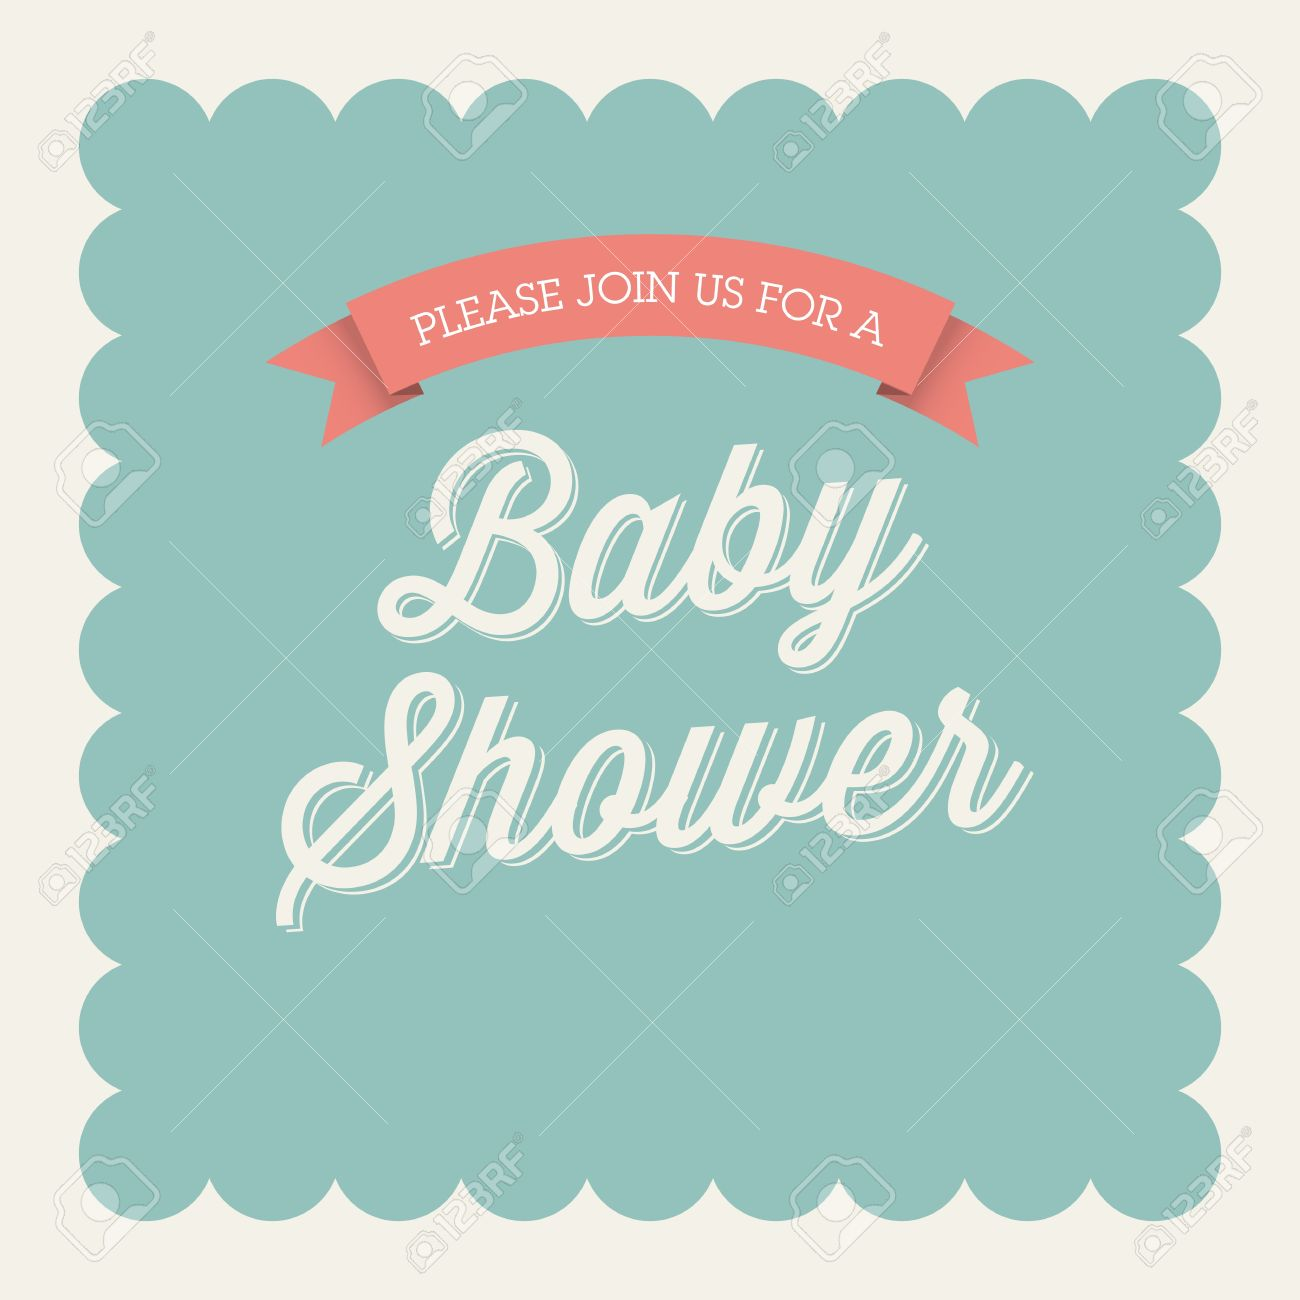 Superior Baby Shower Invitation Card Editable With Type, Font, Ribbon, Frame Border  Vintage Stock